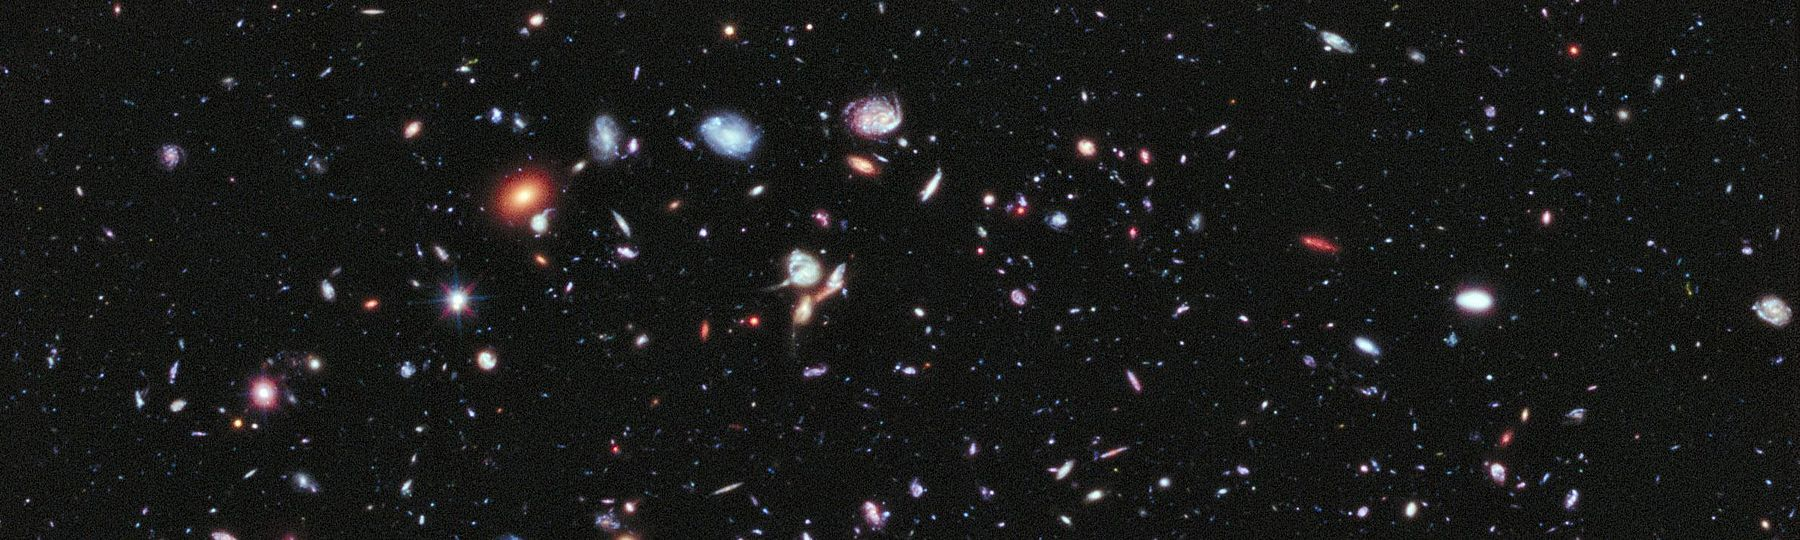 Constellation Fornax, EXtreme Deep Field (cropped).jpg